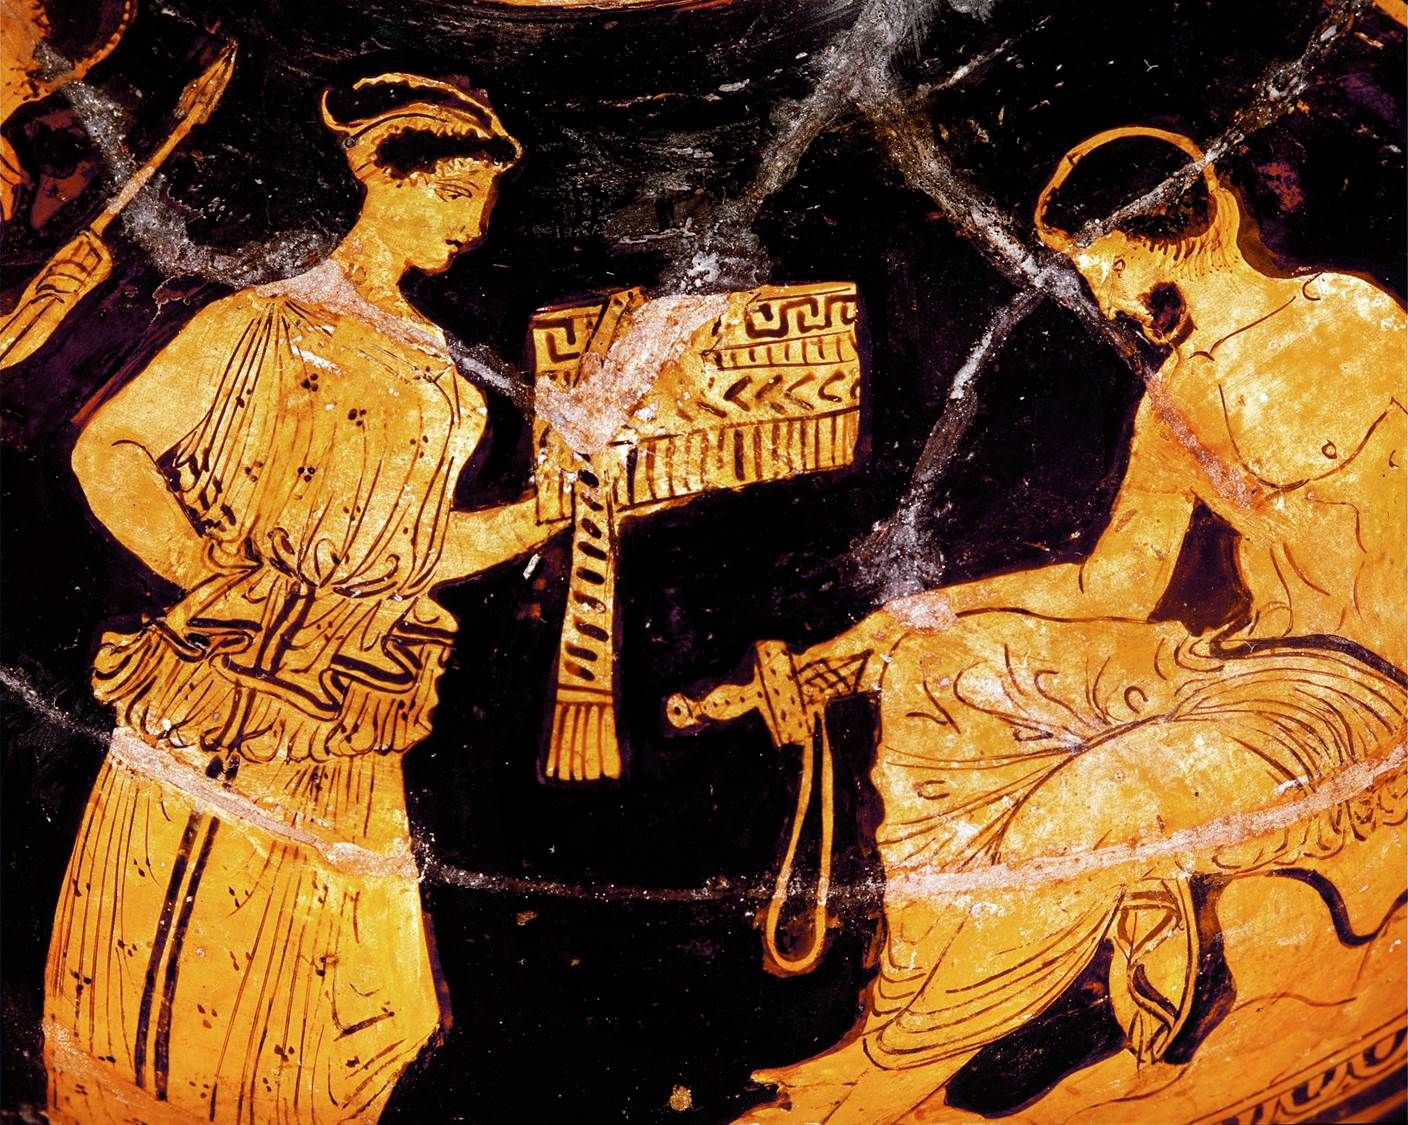 odessey essay In homer's odyssey women and goddesses are consistently playing major roles whether it be cherishing and taking care of the men, or being the cause disaster.